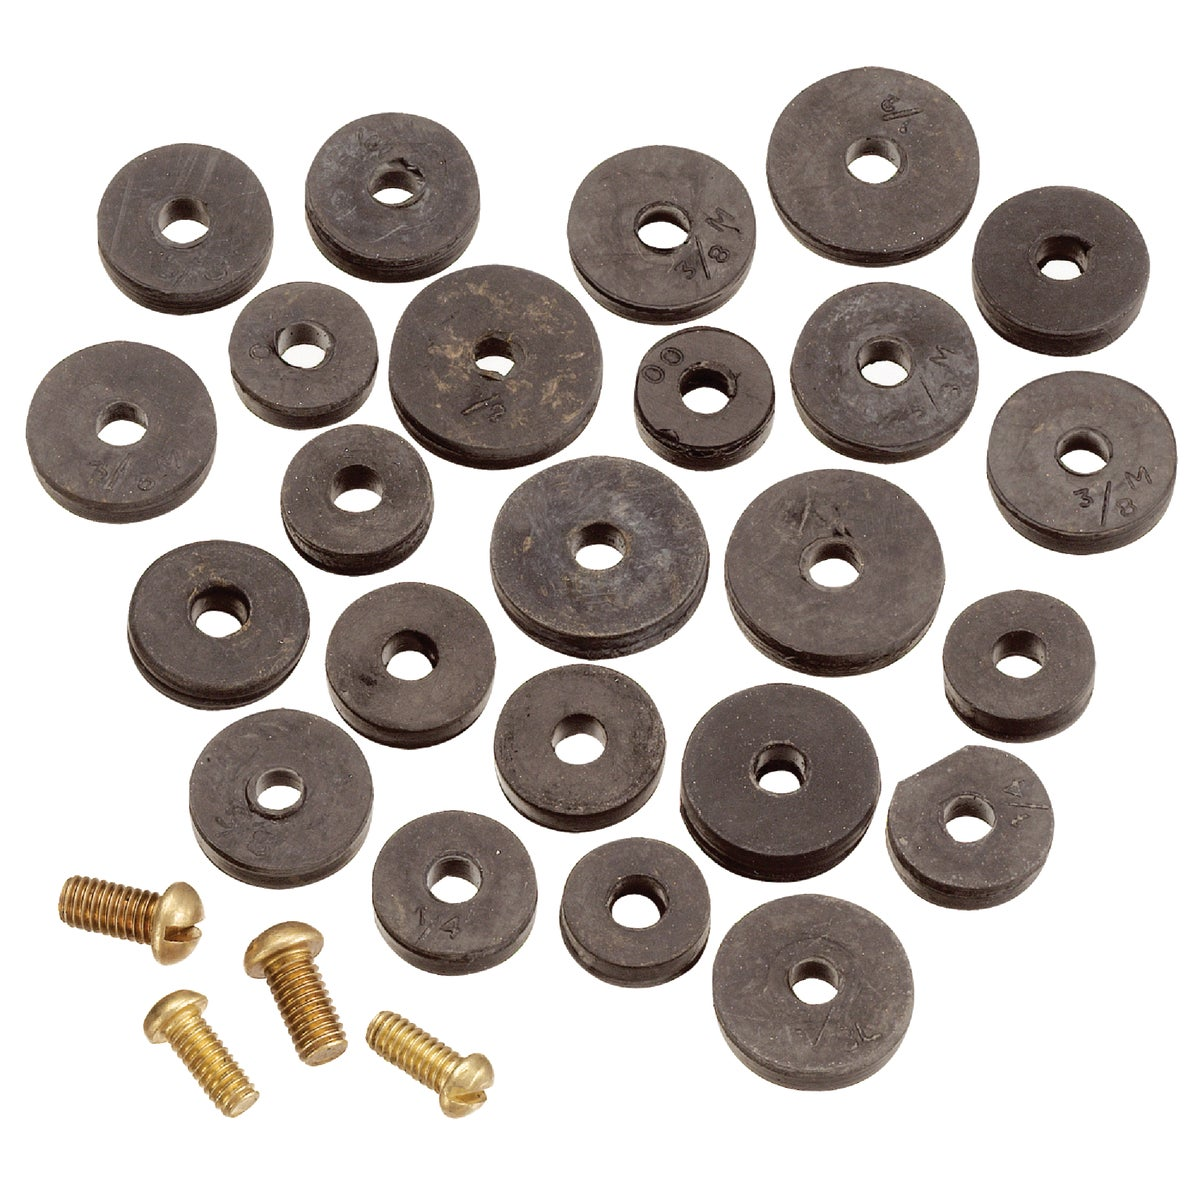 FLAT WASHER ASSORTMENT - 426943 by Plumb Pak/keeney Mfg